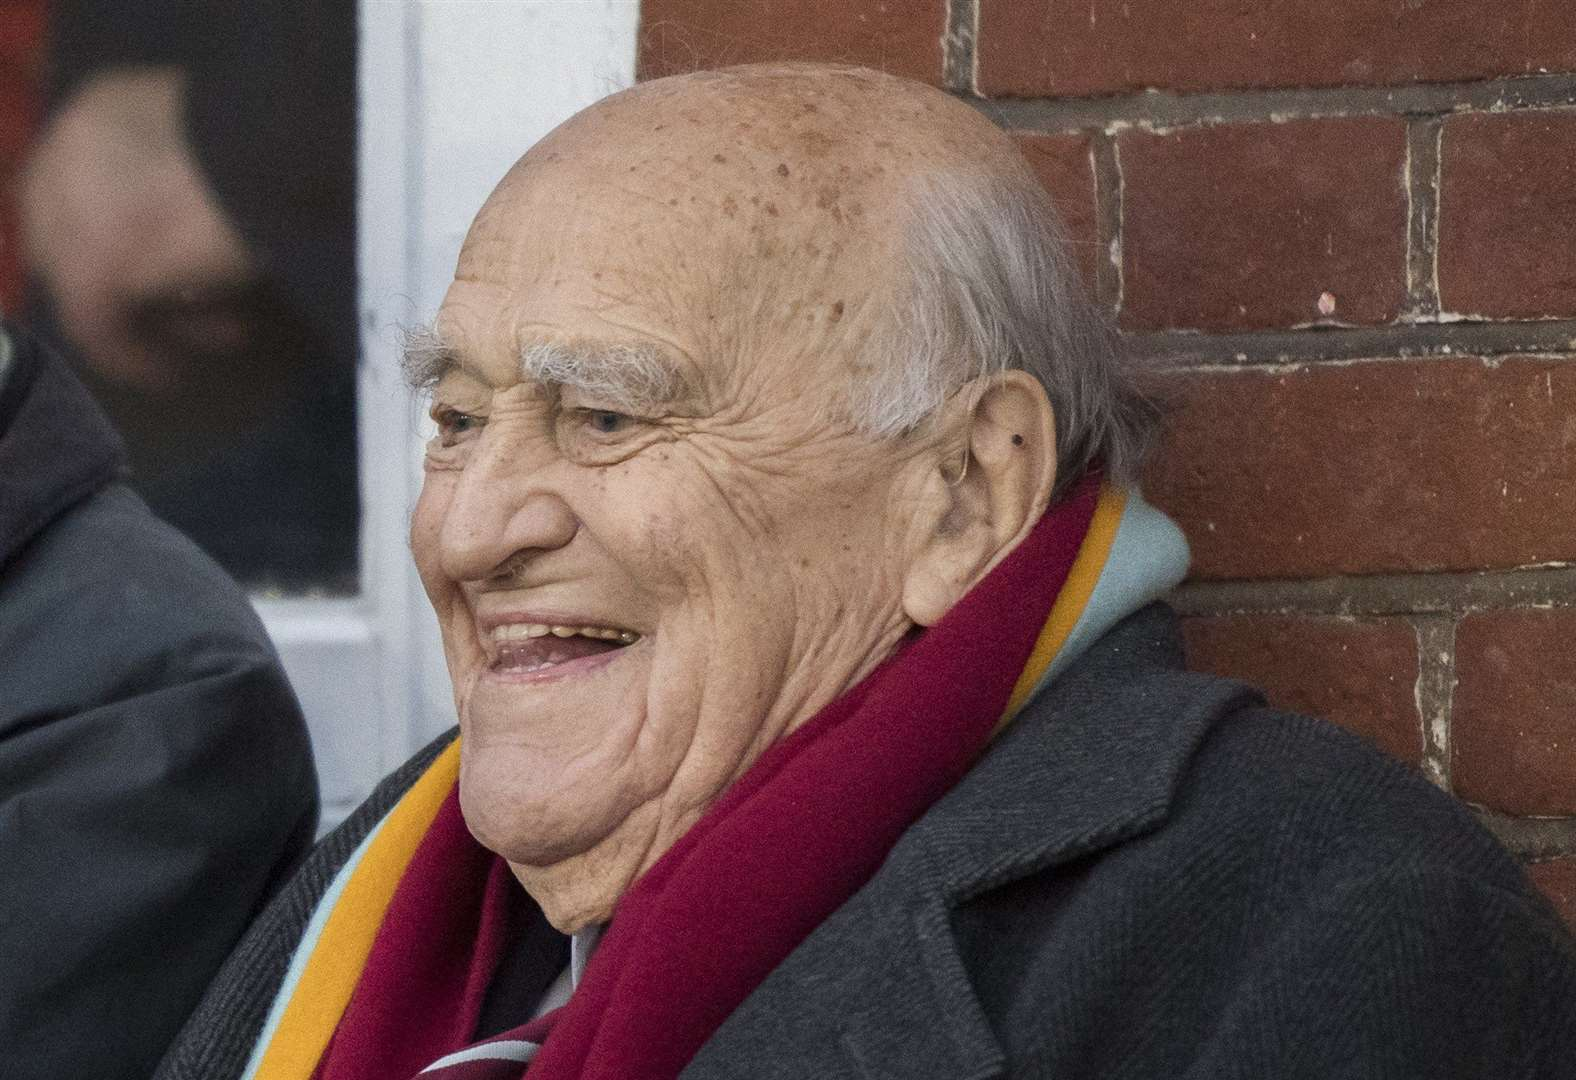 Cambridge University rugby great Micky Steele-Bodger dies aged 93